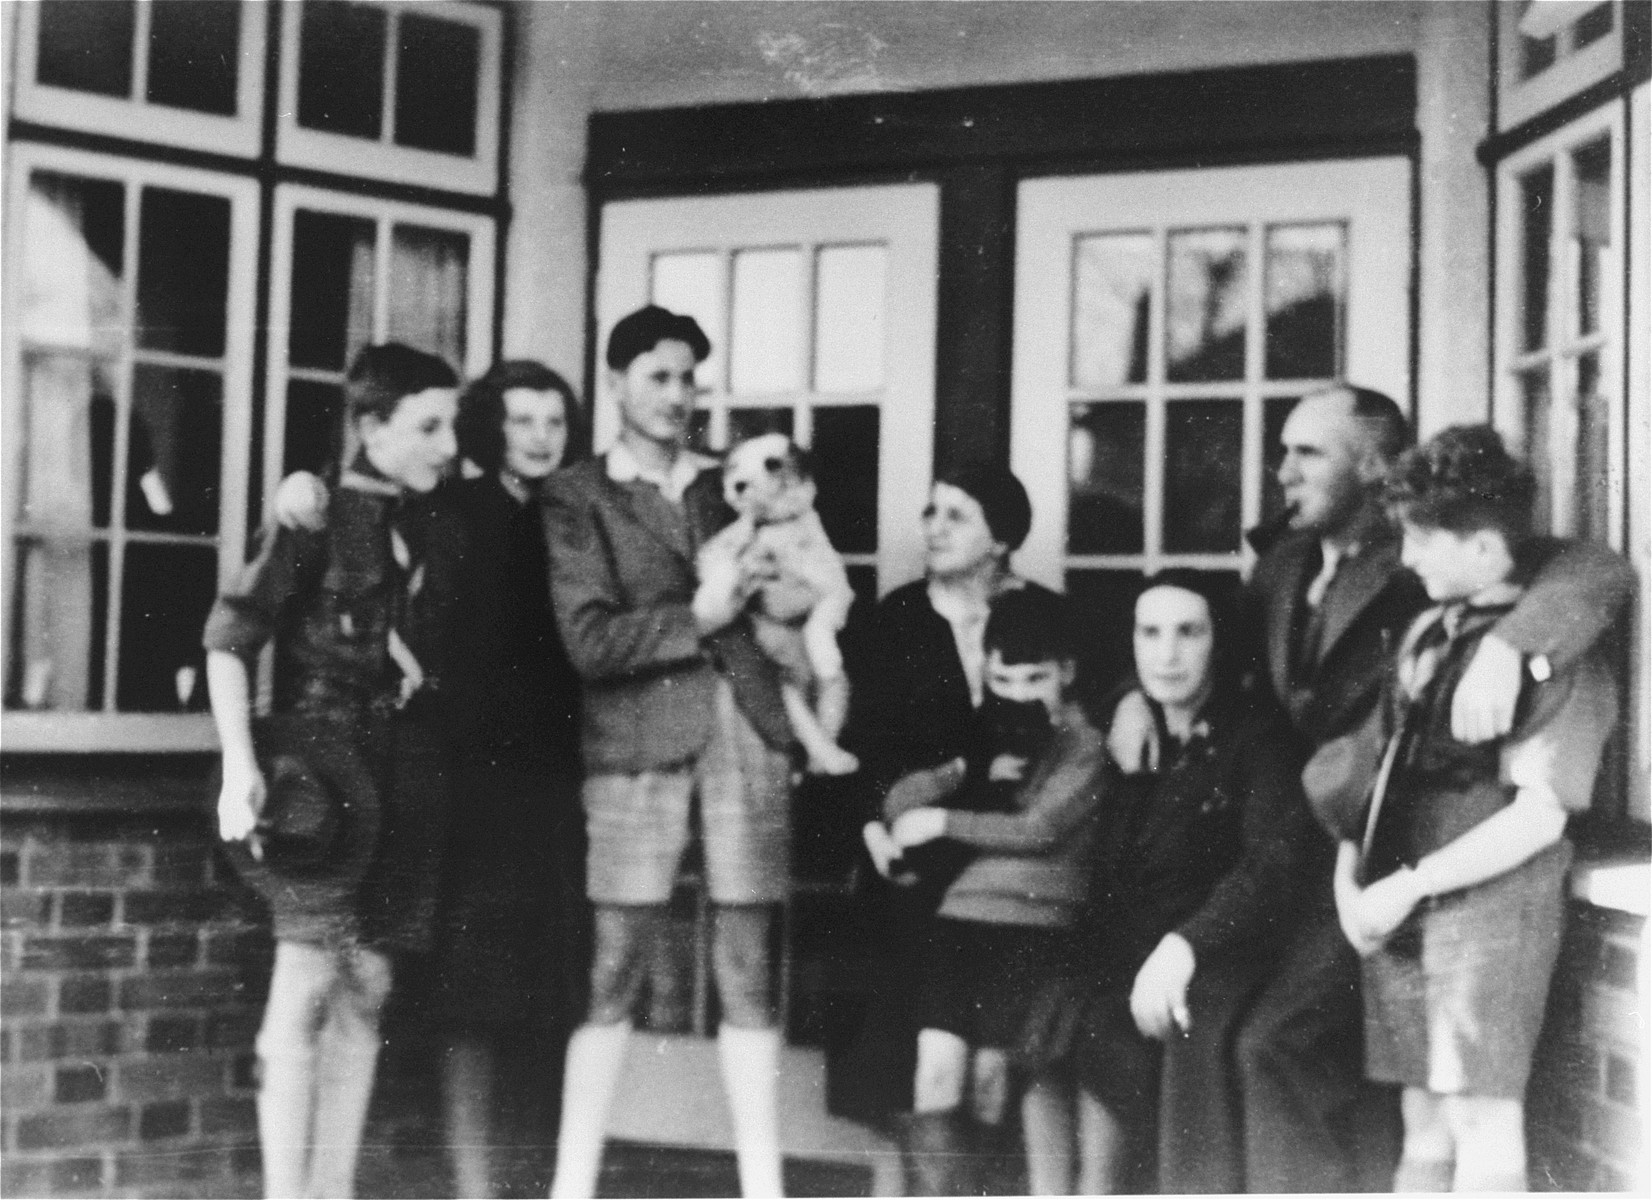 Three Jewish refugee children from Vienna who came to England on a Kindertransport, pose with their foster family, Mary and Ashford Moar, in Bristol, England.    Pictured at the left are Steven and Eva Kollisch; at the far right is their brother, Peter; their foster parents, Ashford and Mary Moar, stand next to Peter.